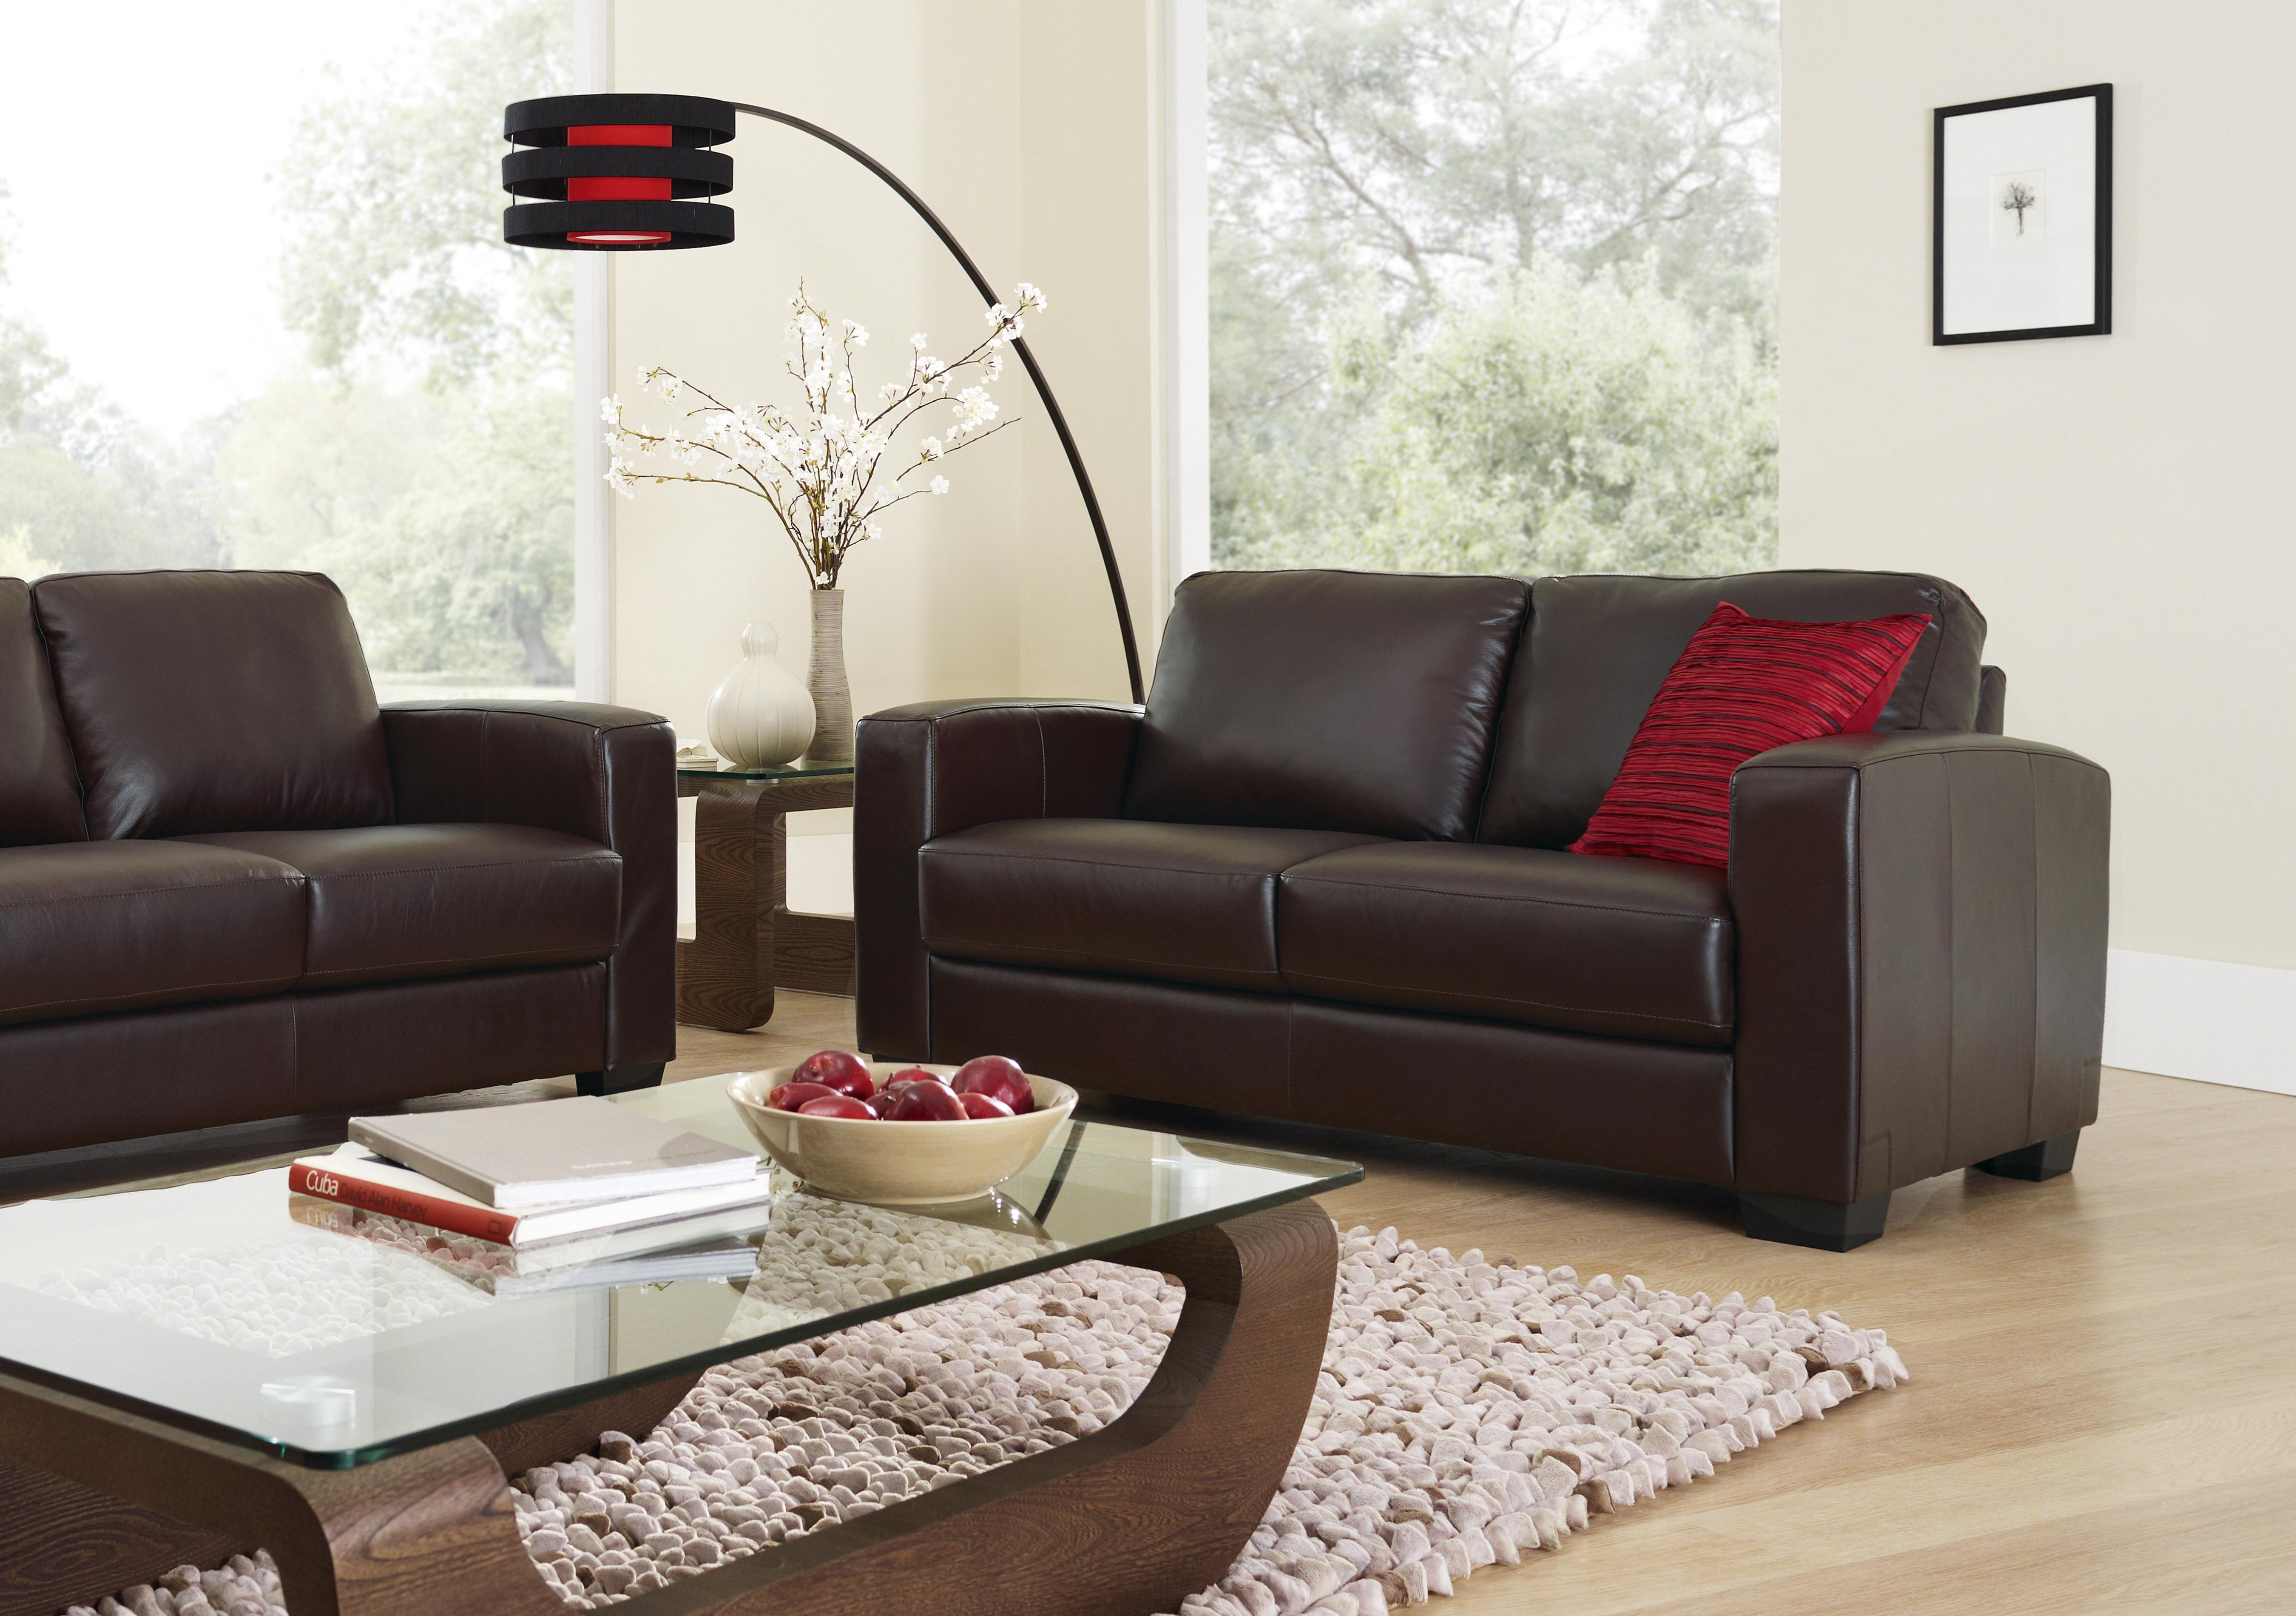 Sofa Beds - Comfortable and Gorgeous - Furniture Village